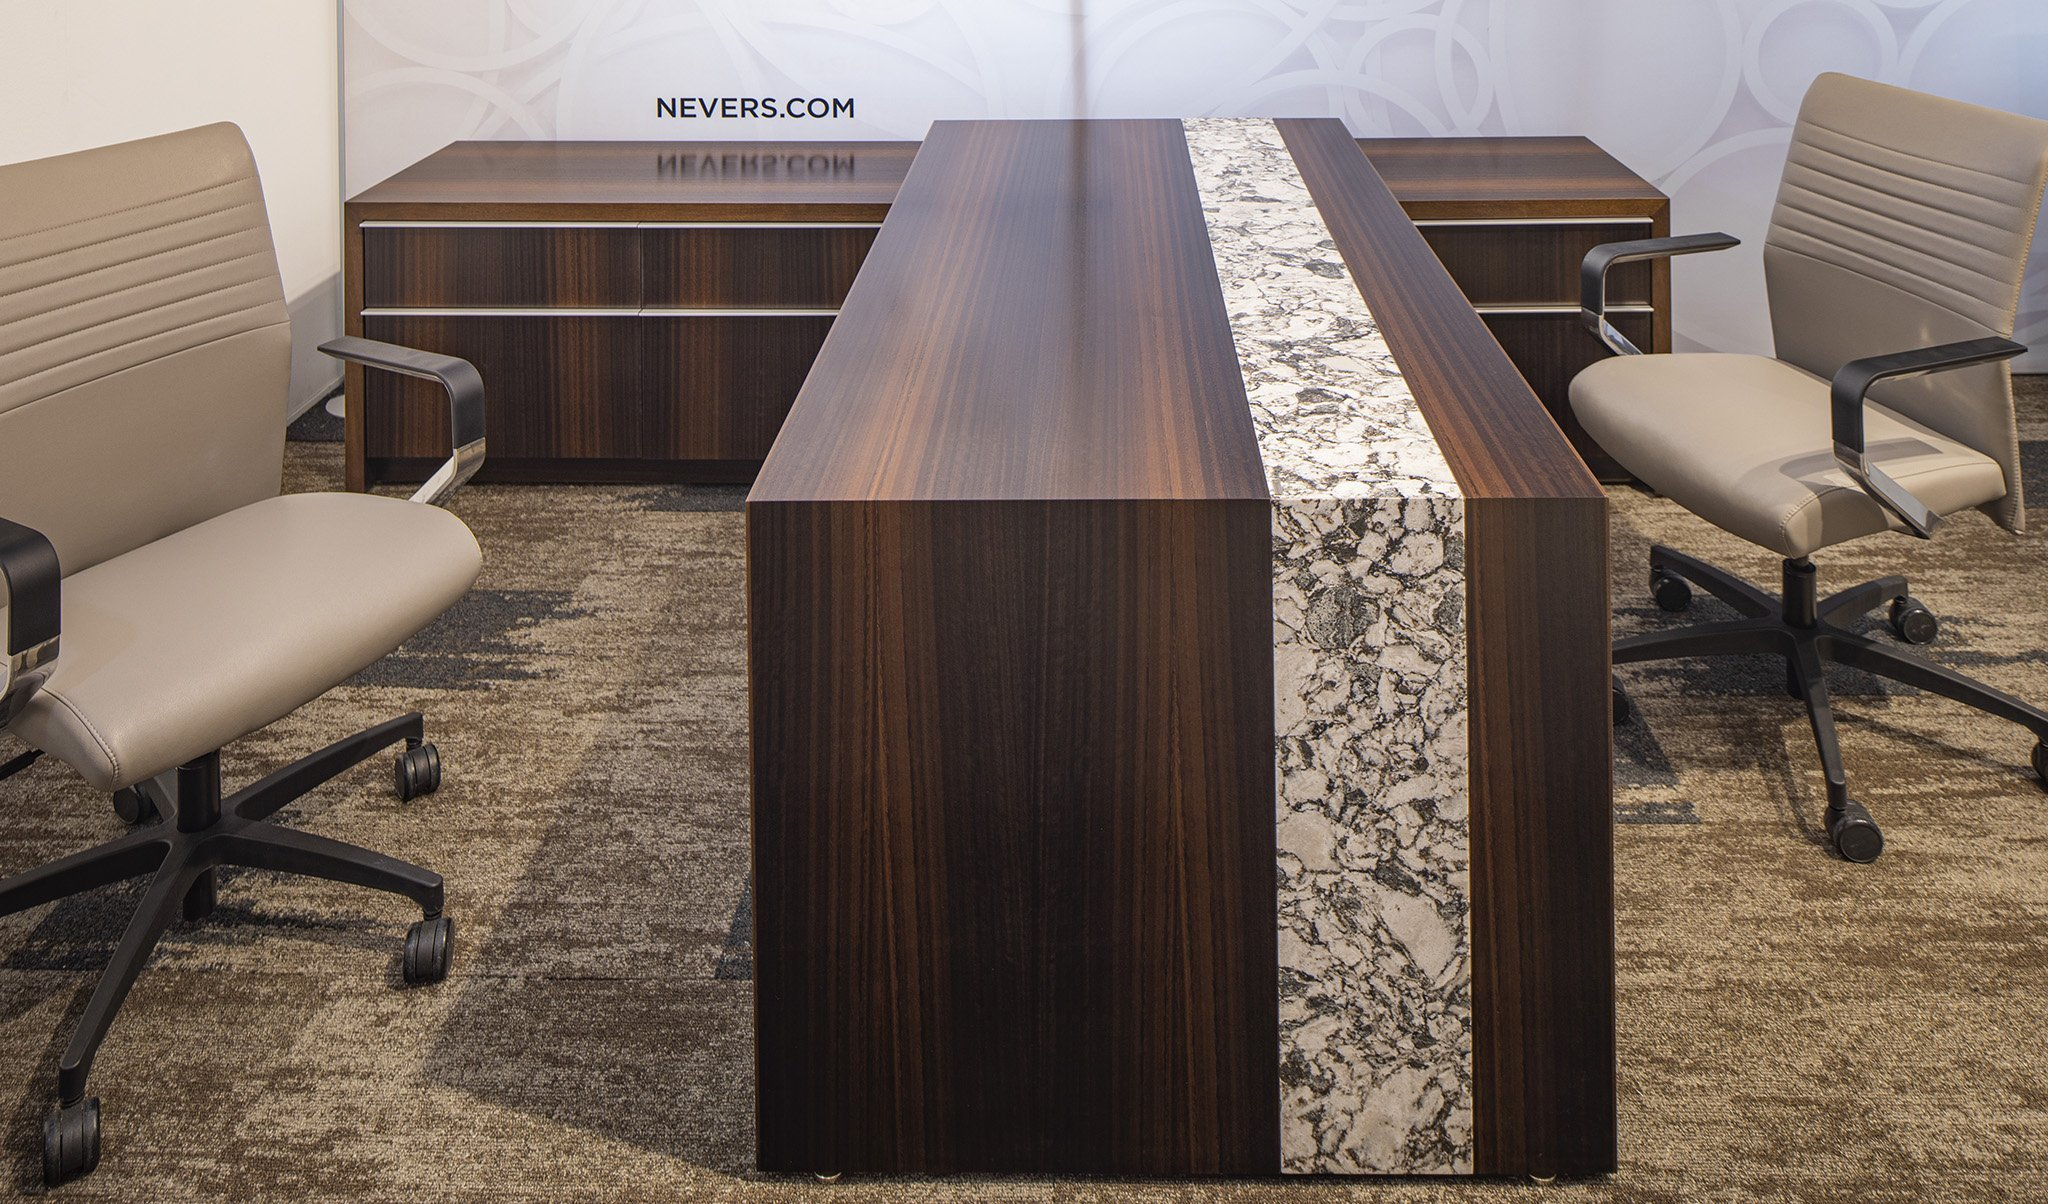 Nevers Furniture - Office Interiors